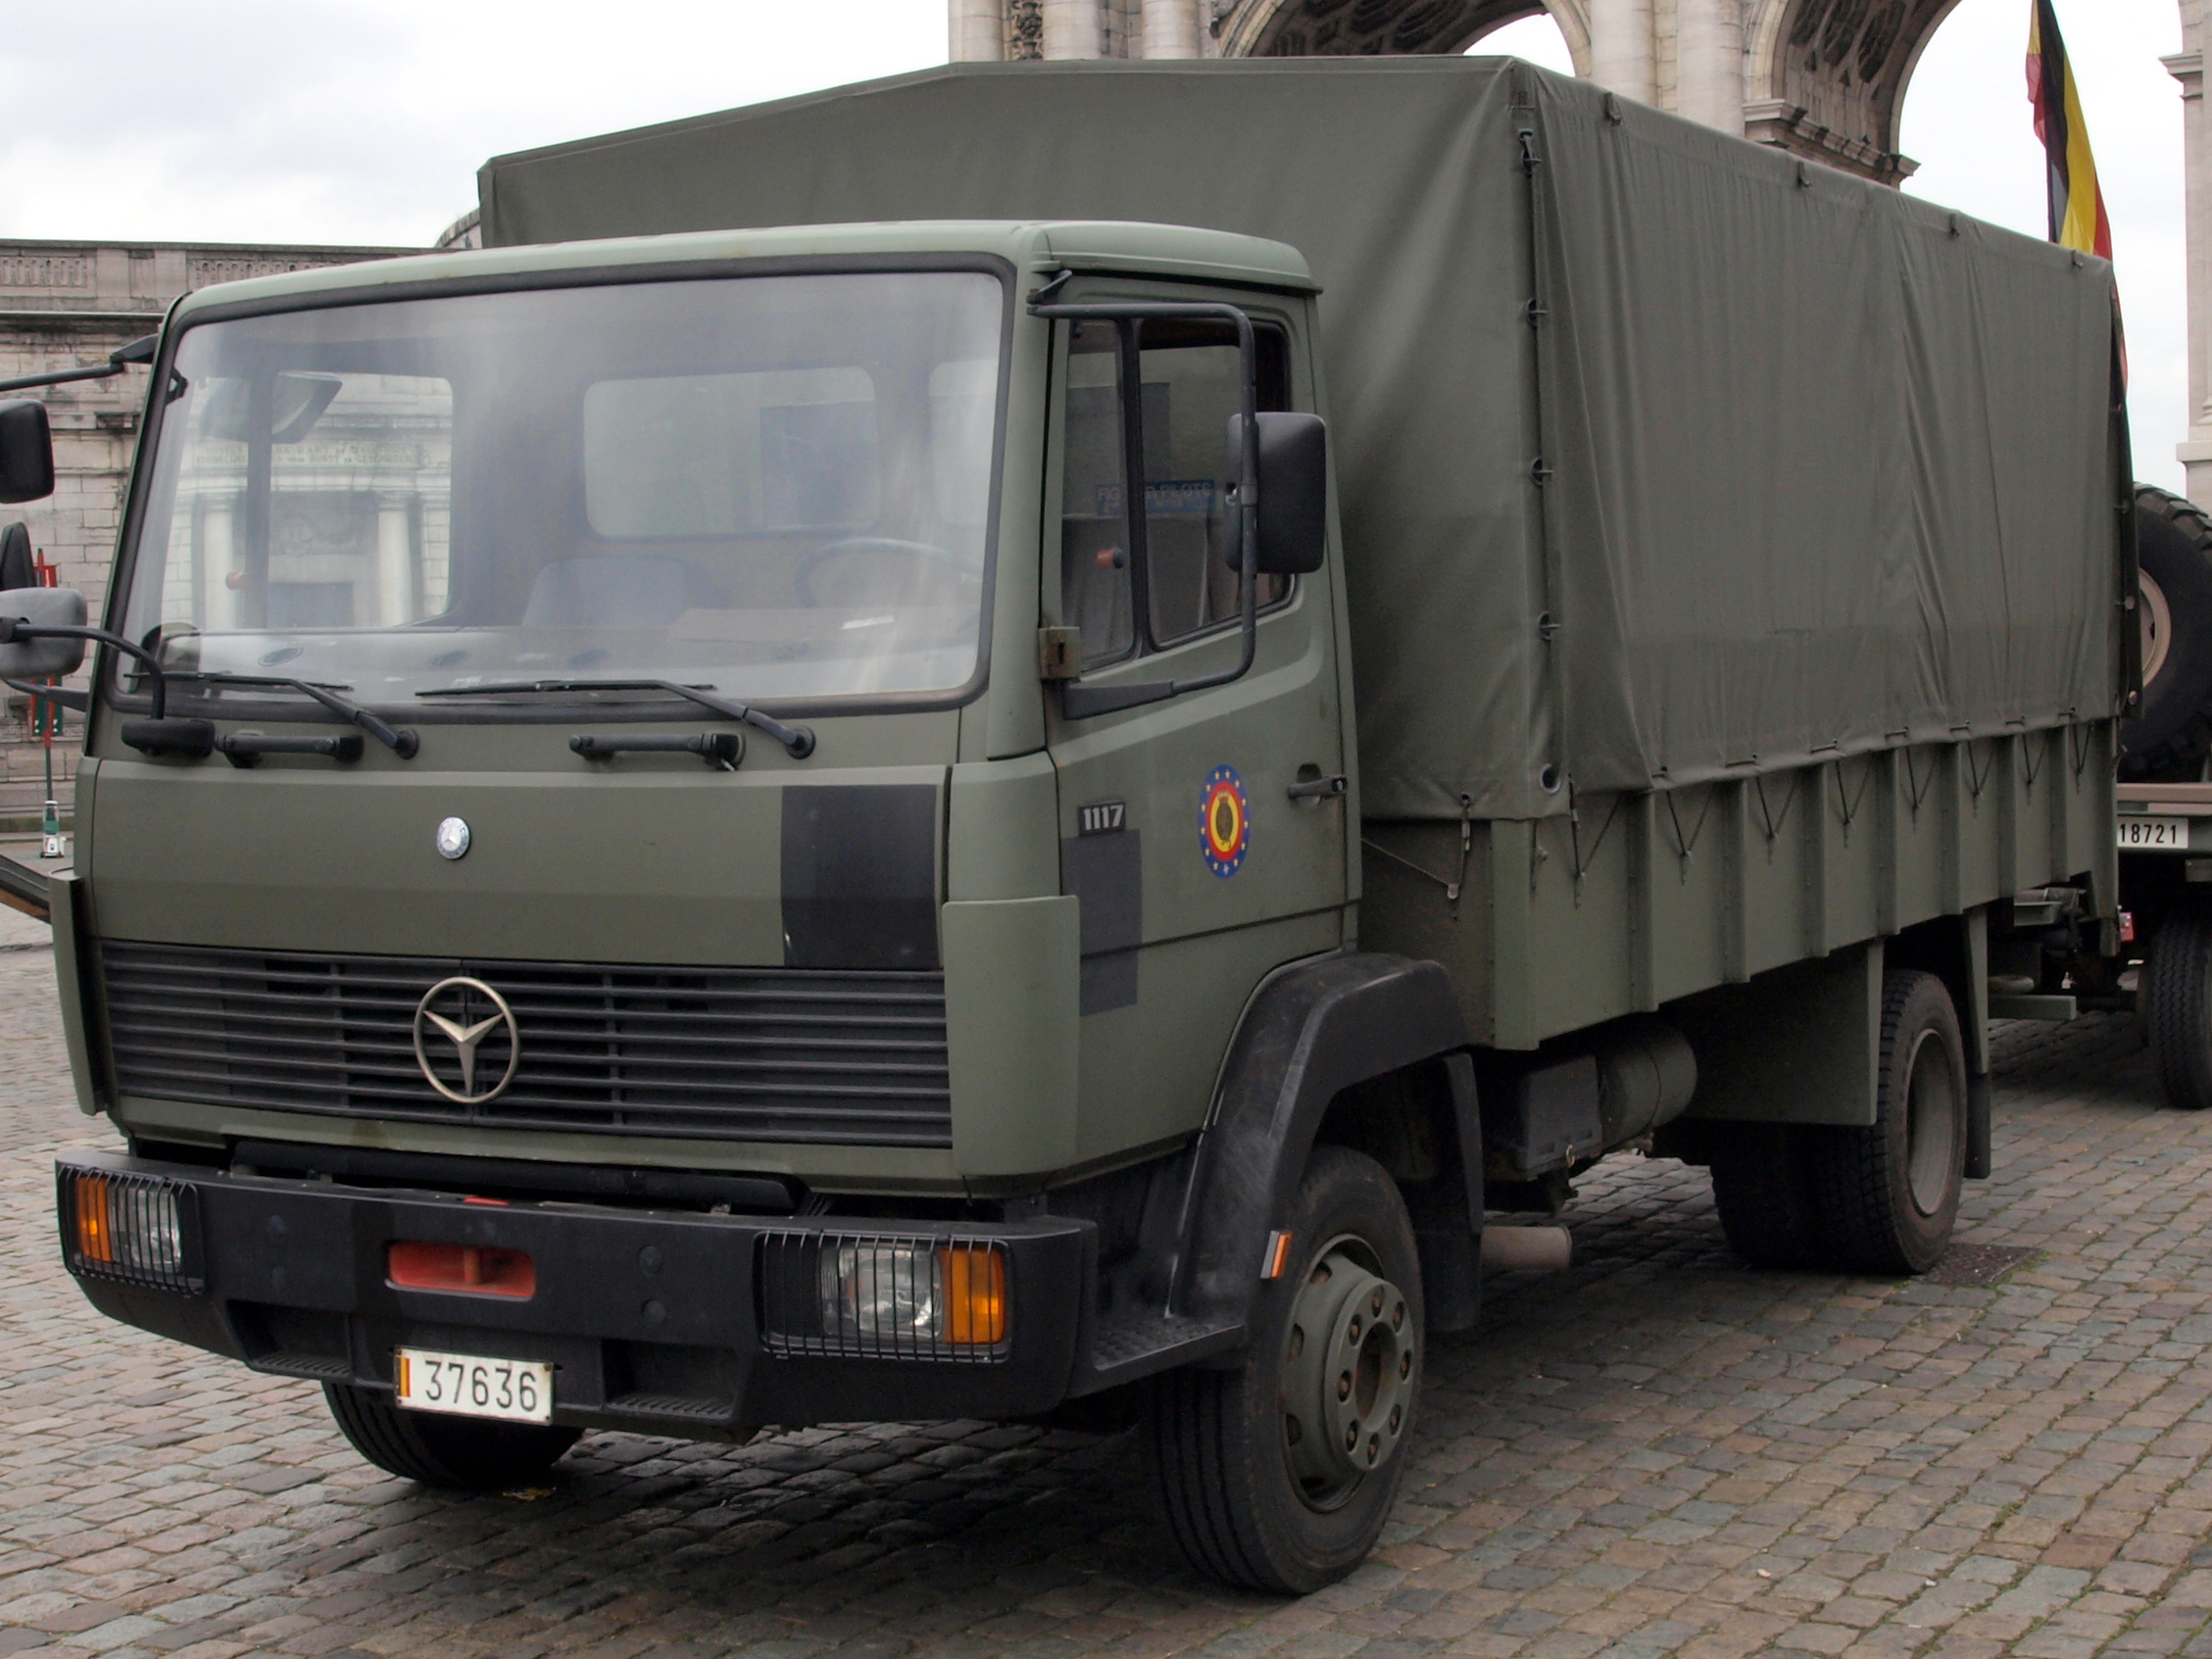 File:Mercedes 1117 of the Belgian Army, licence registration 37636.JPG